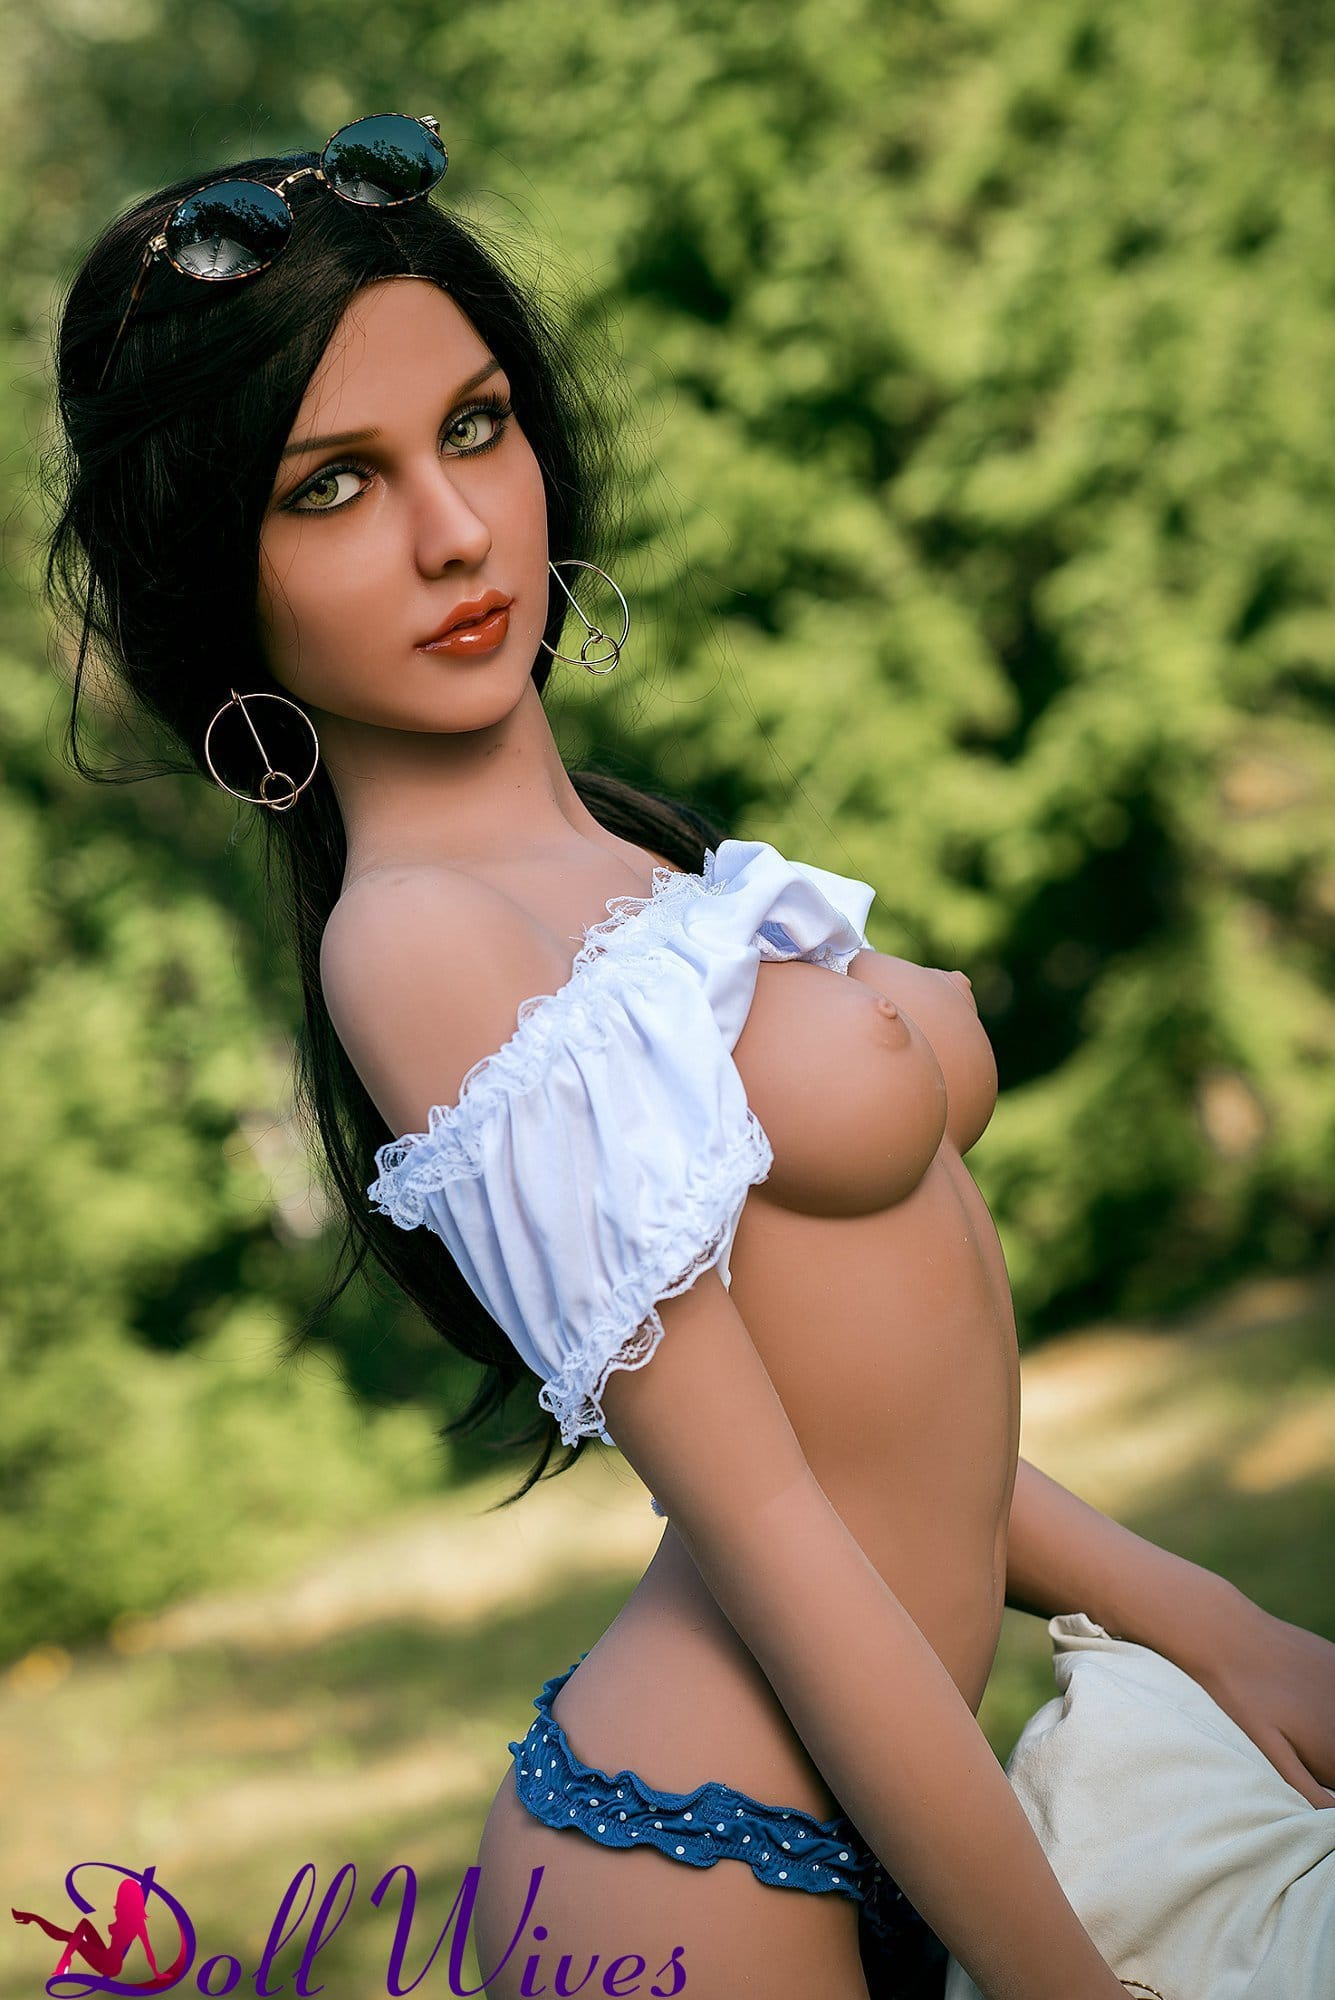 Amerikan Sex victoria: all american sex doll